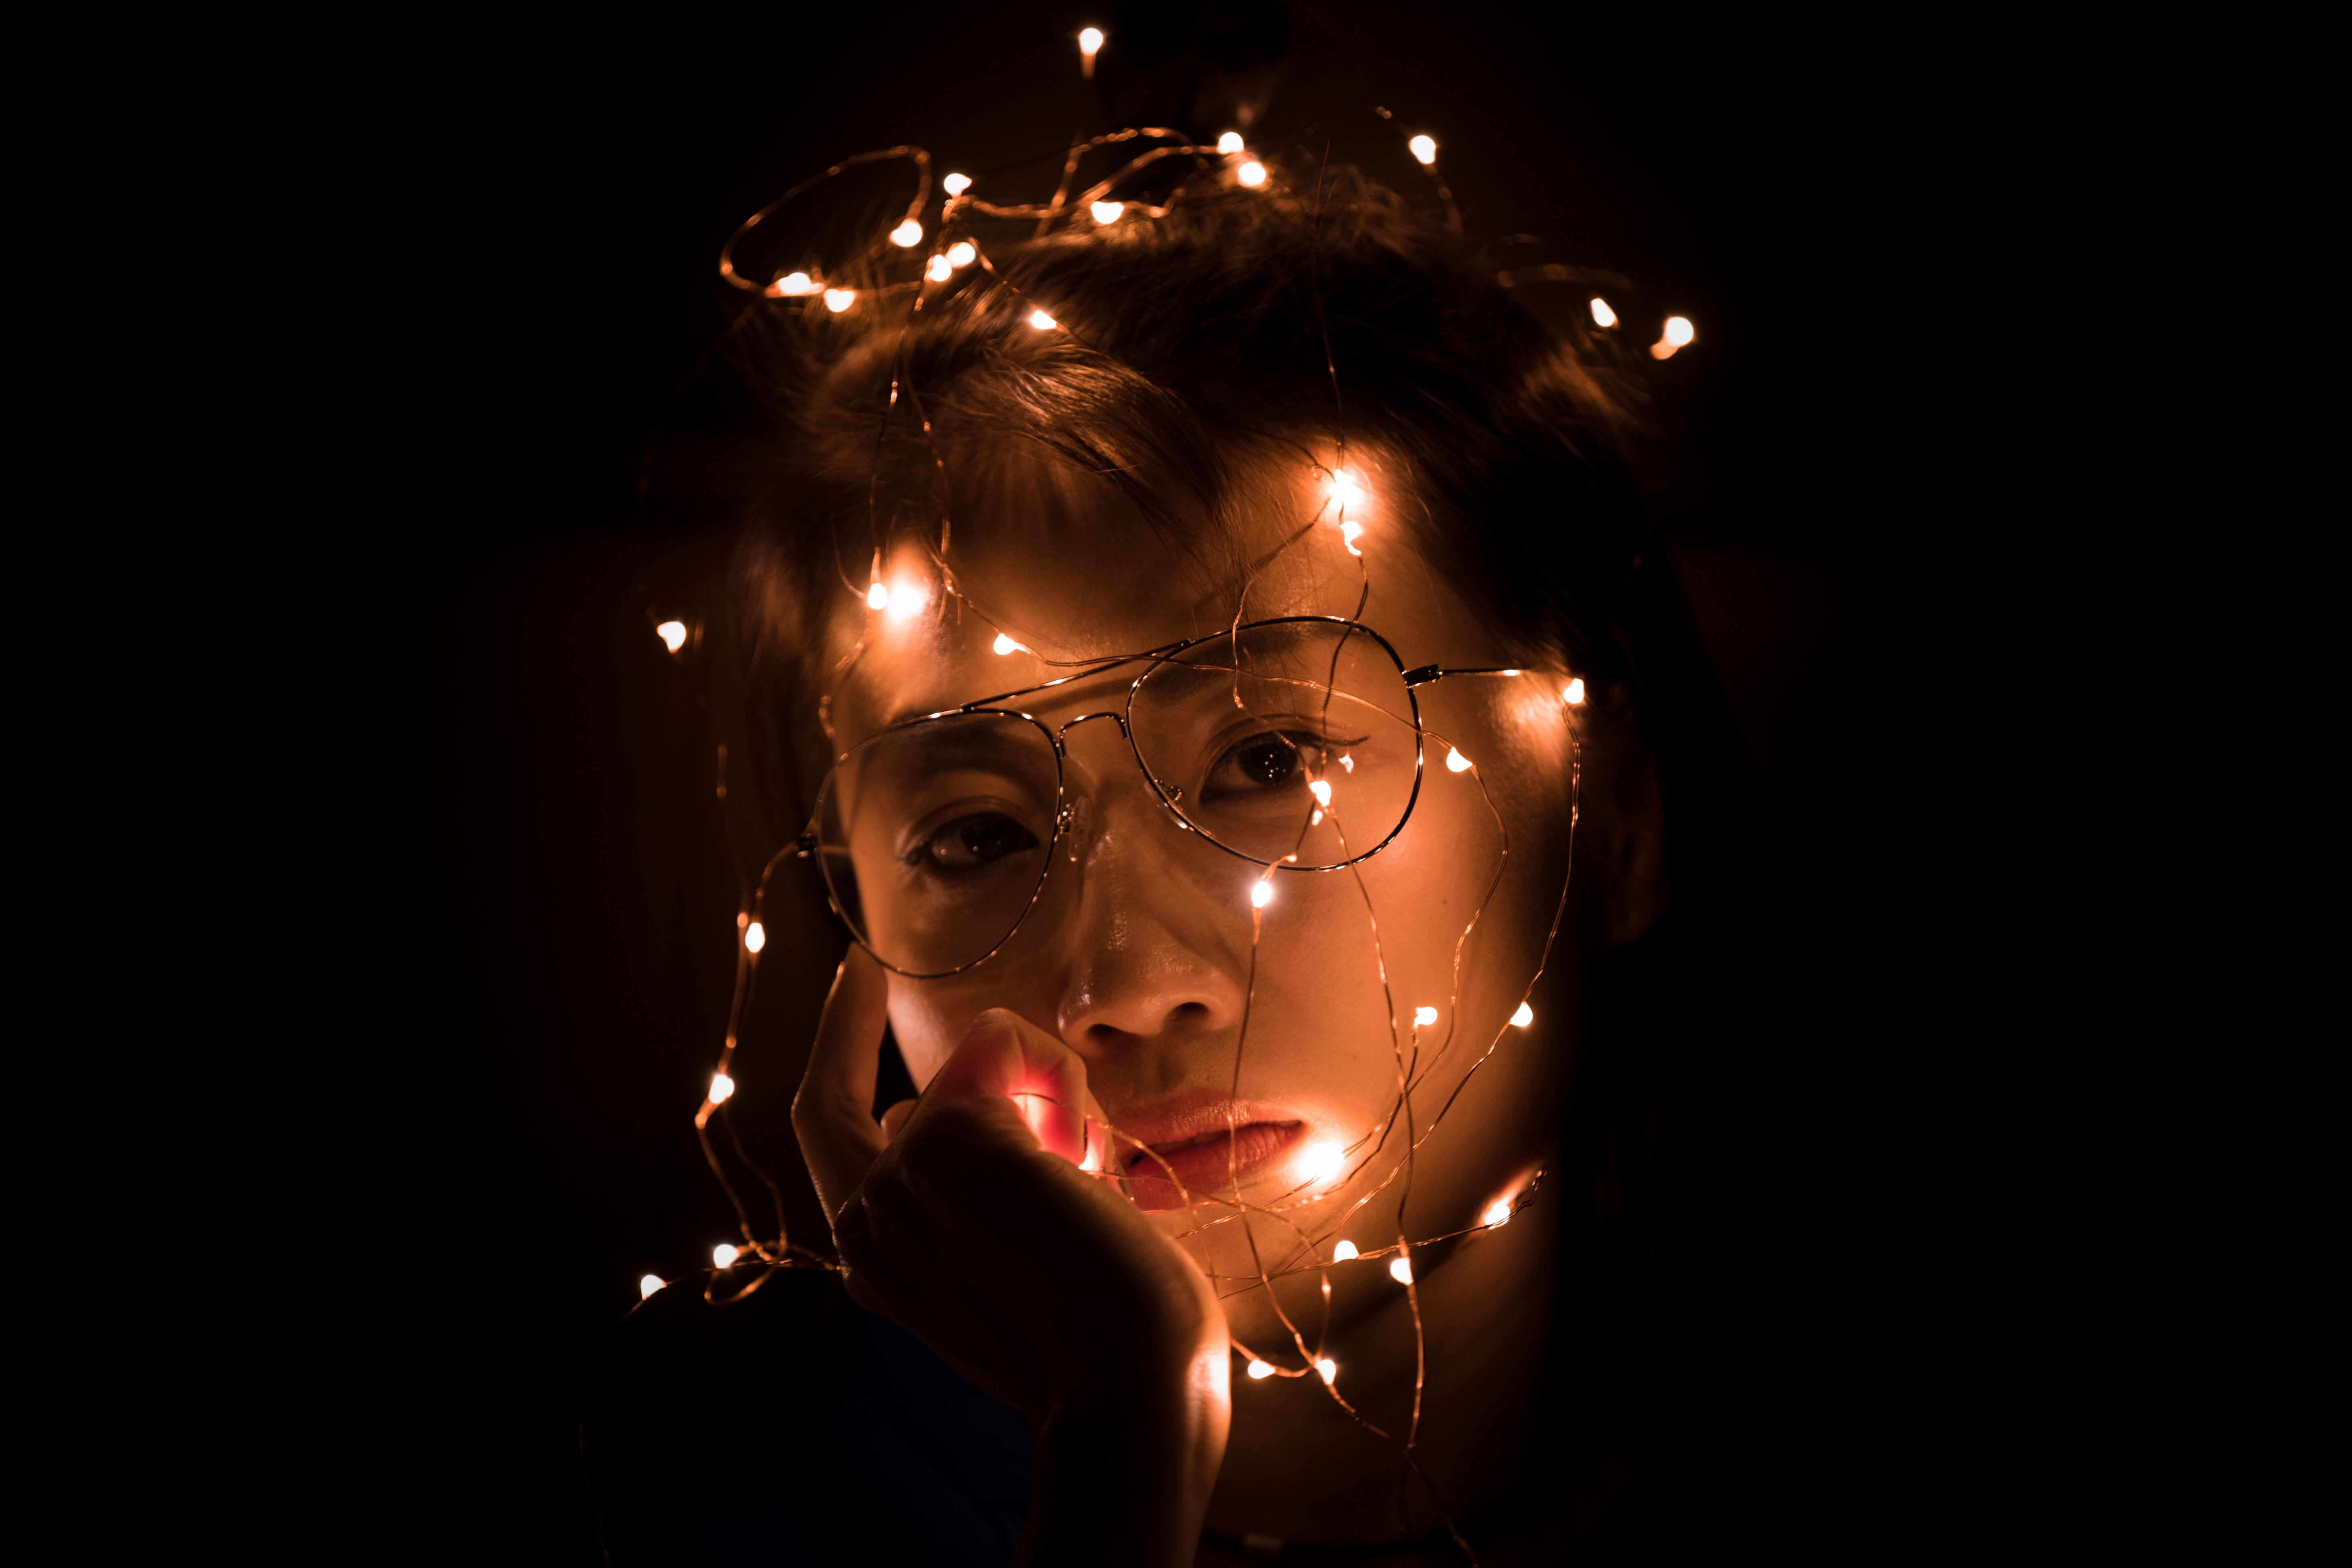 string light portrait photography of woman wearing eyeglasses